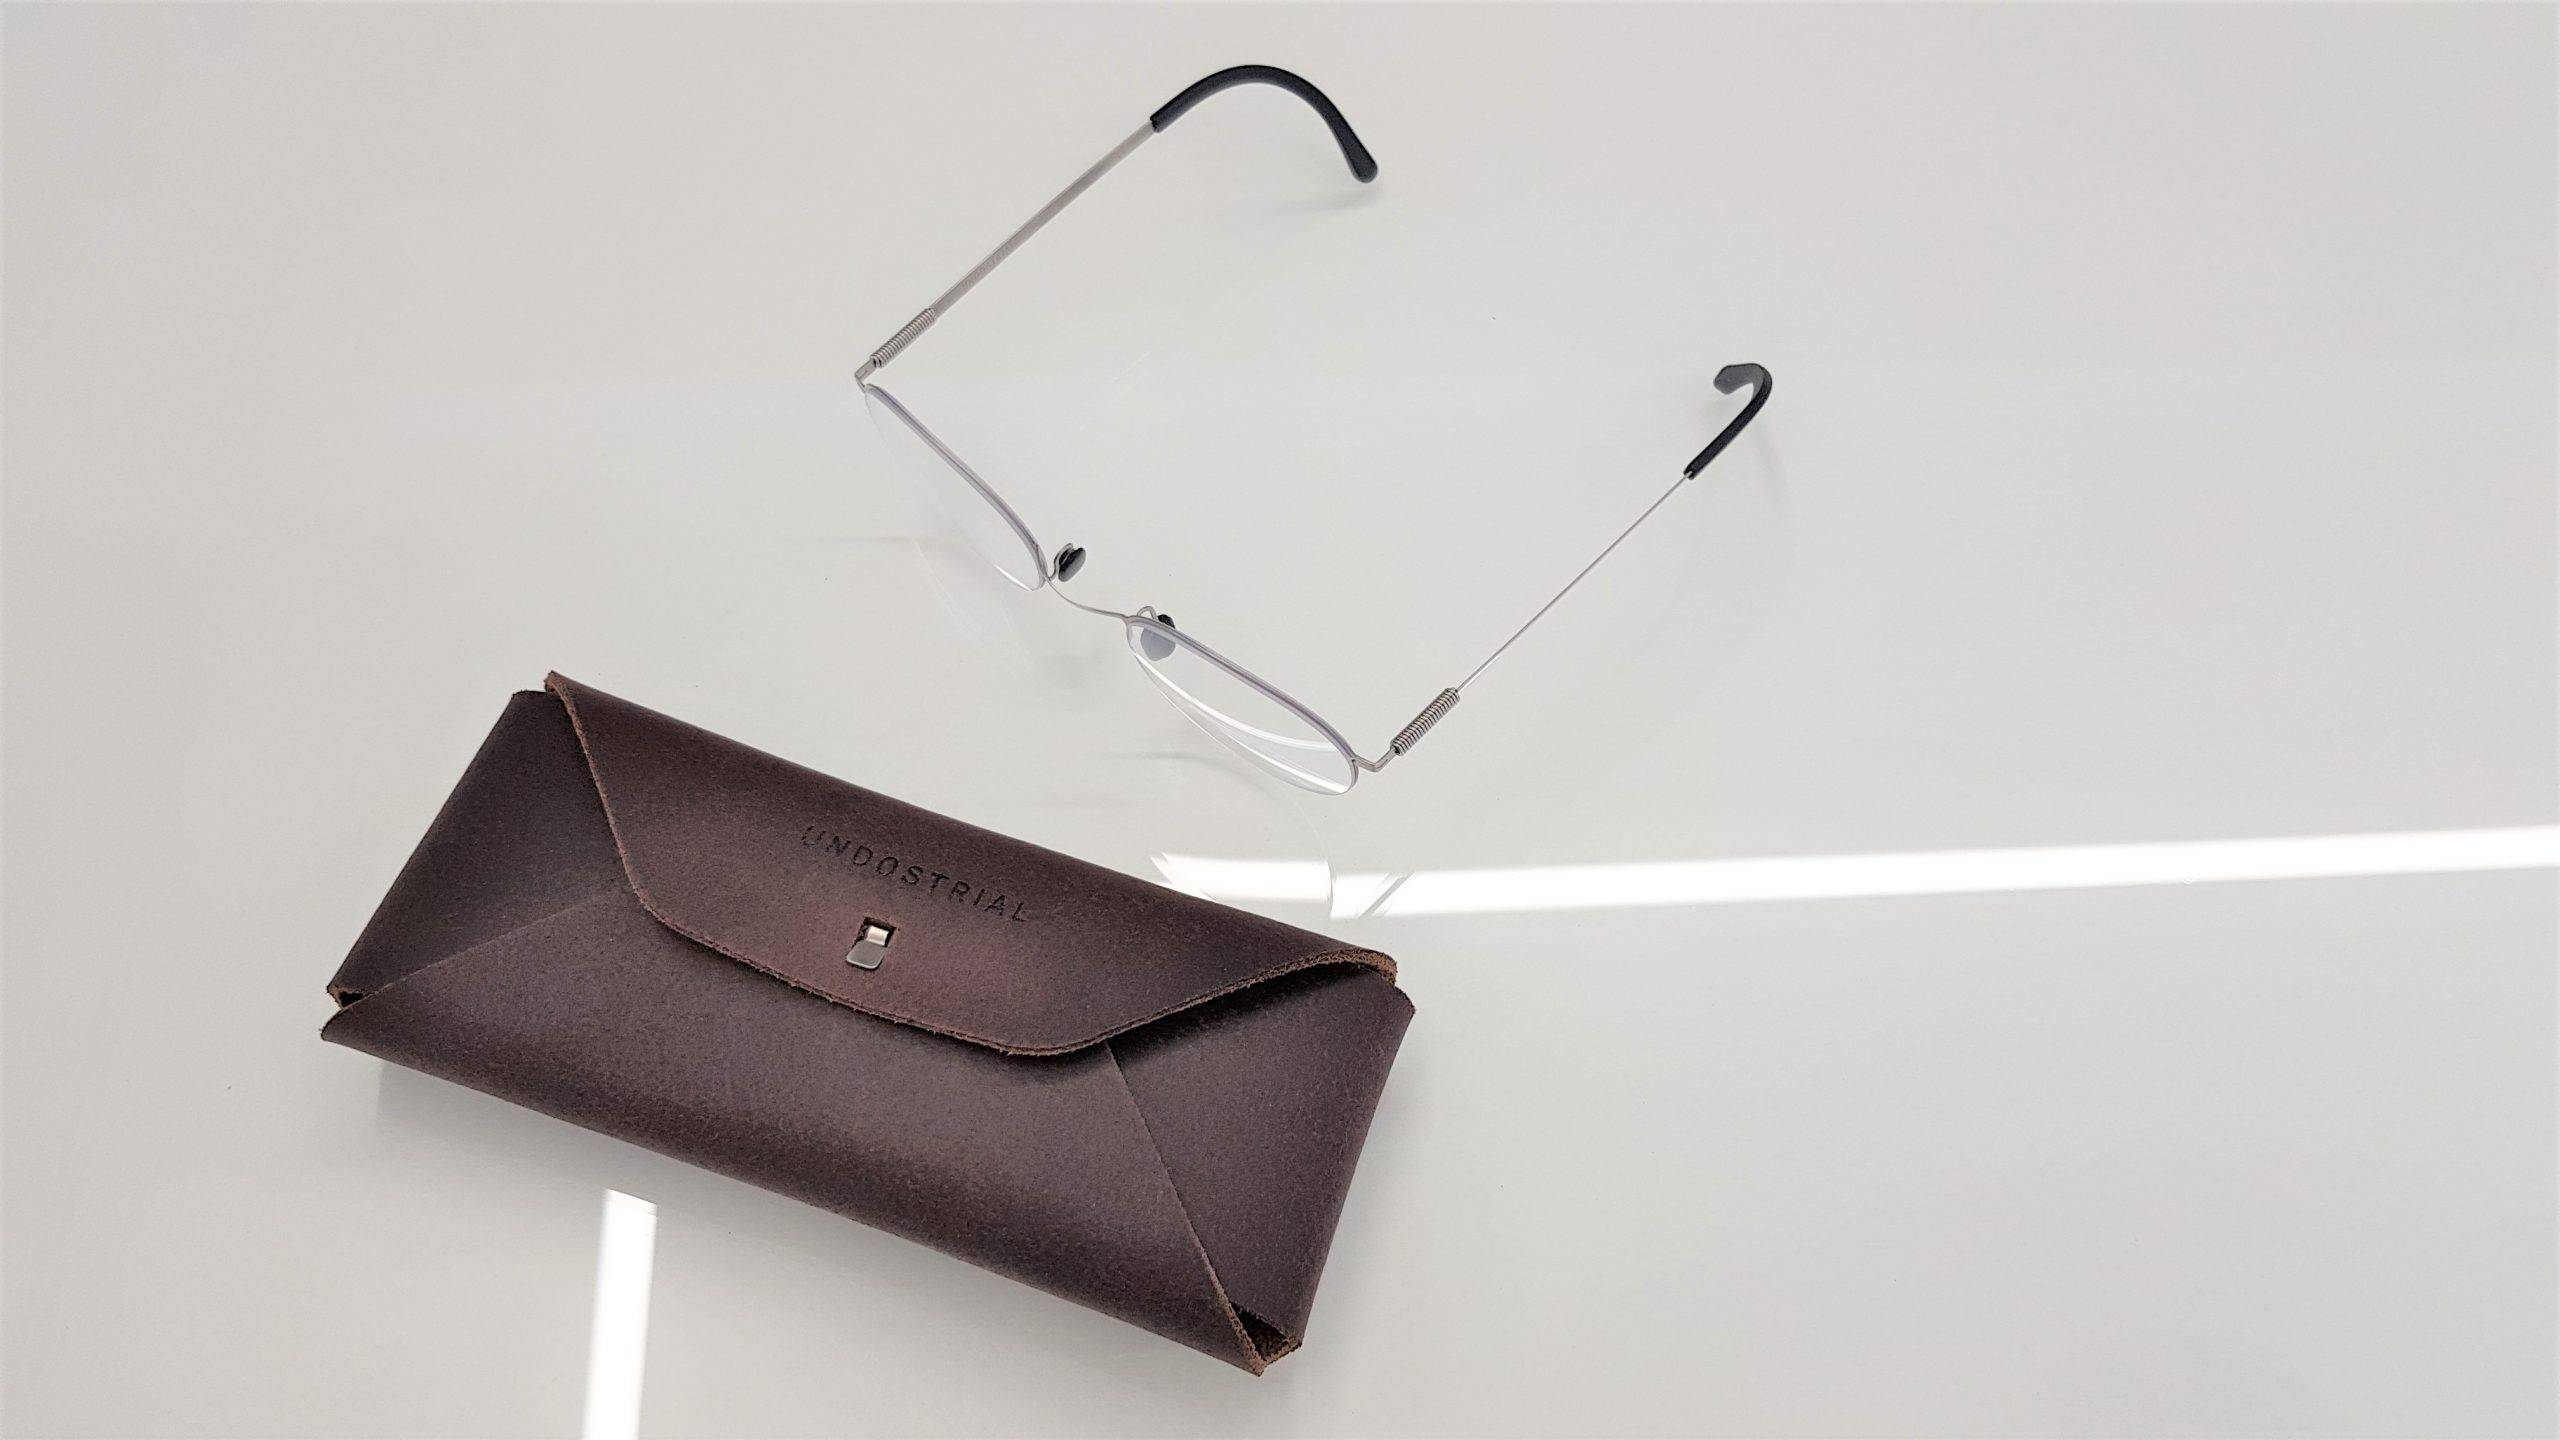 Undostrial Springe frames with their leather case